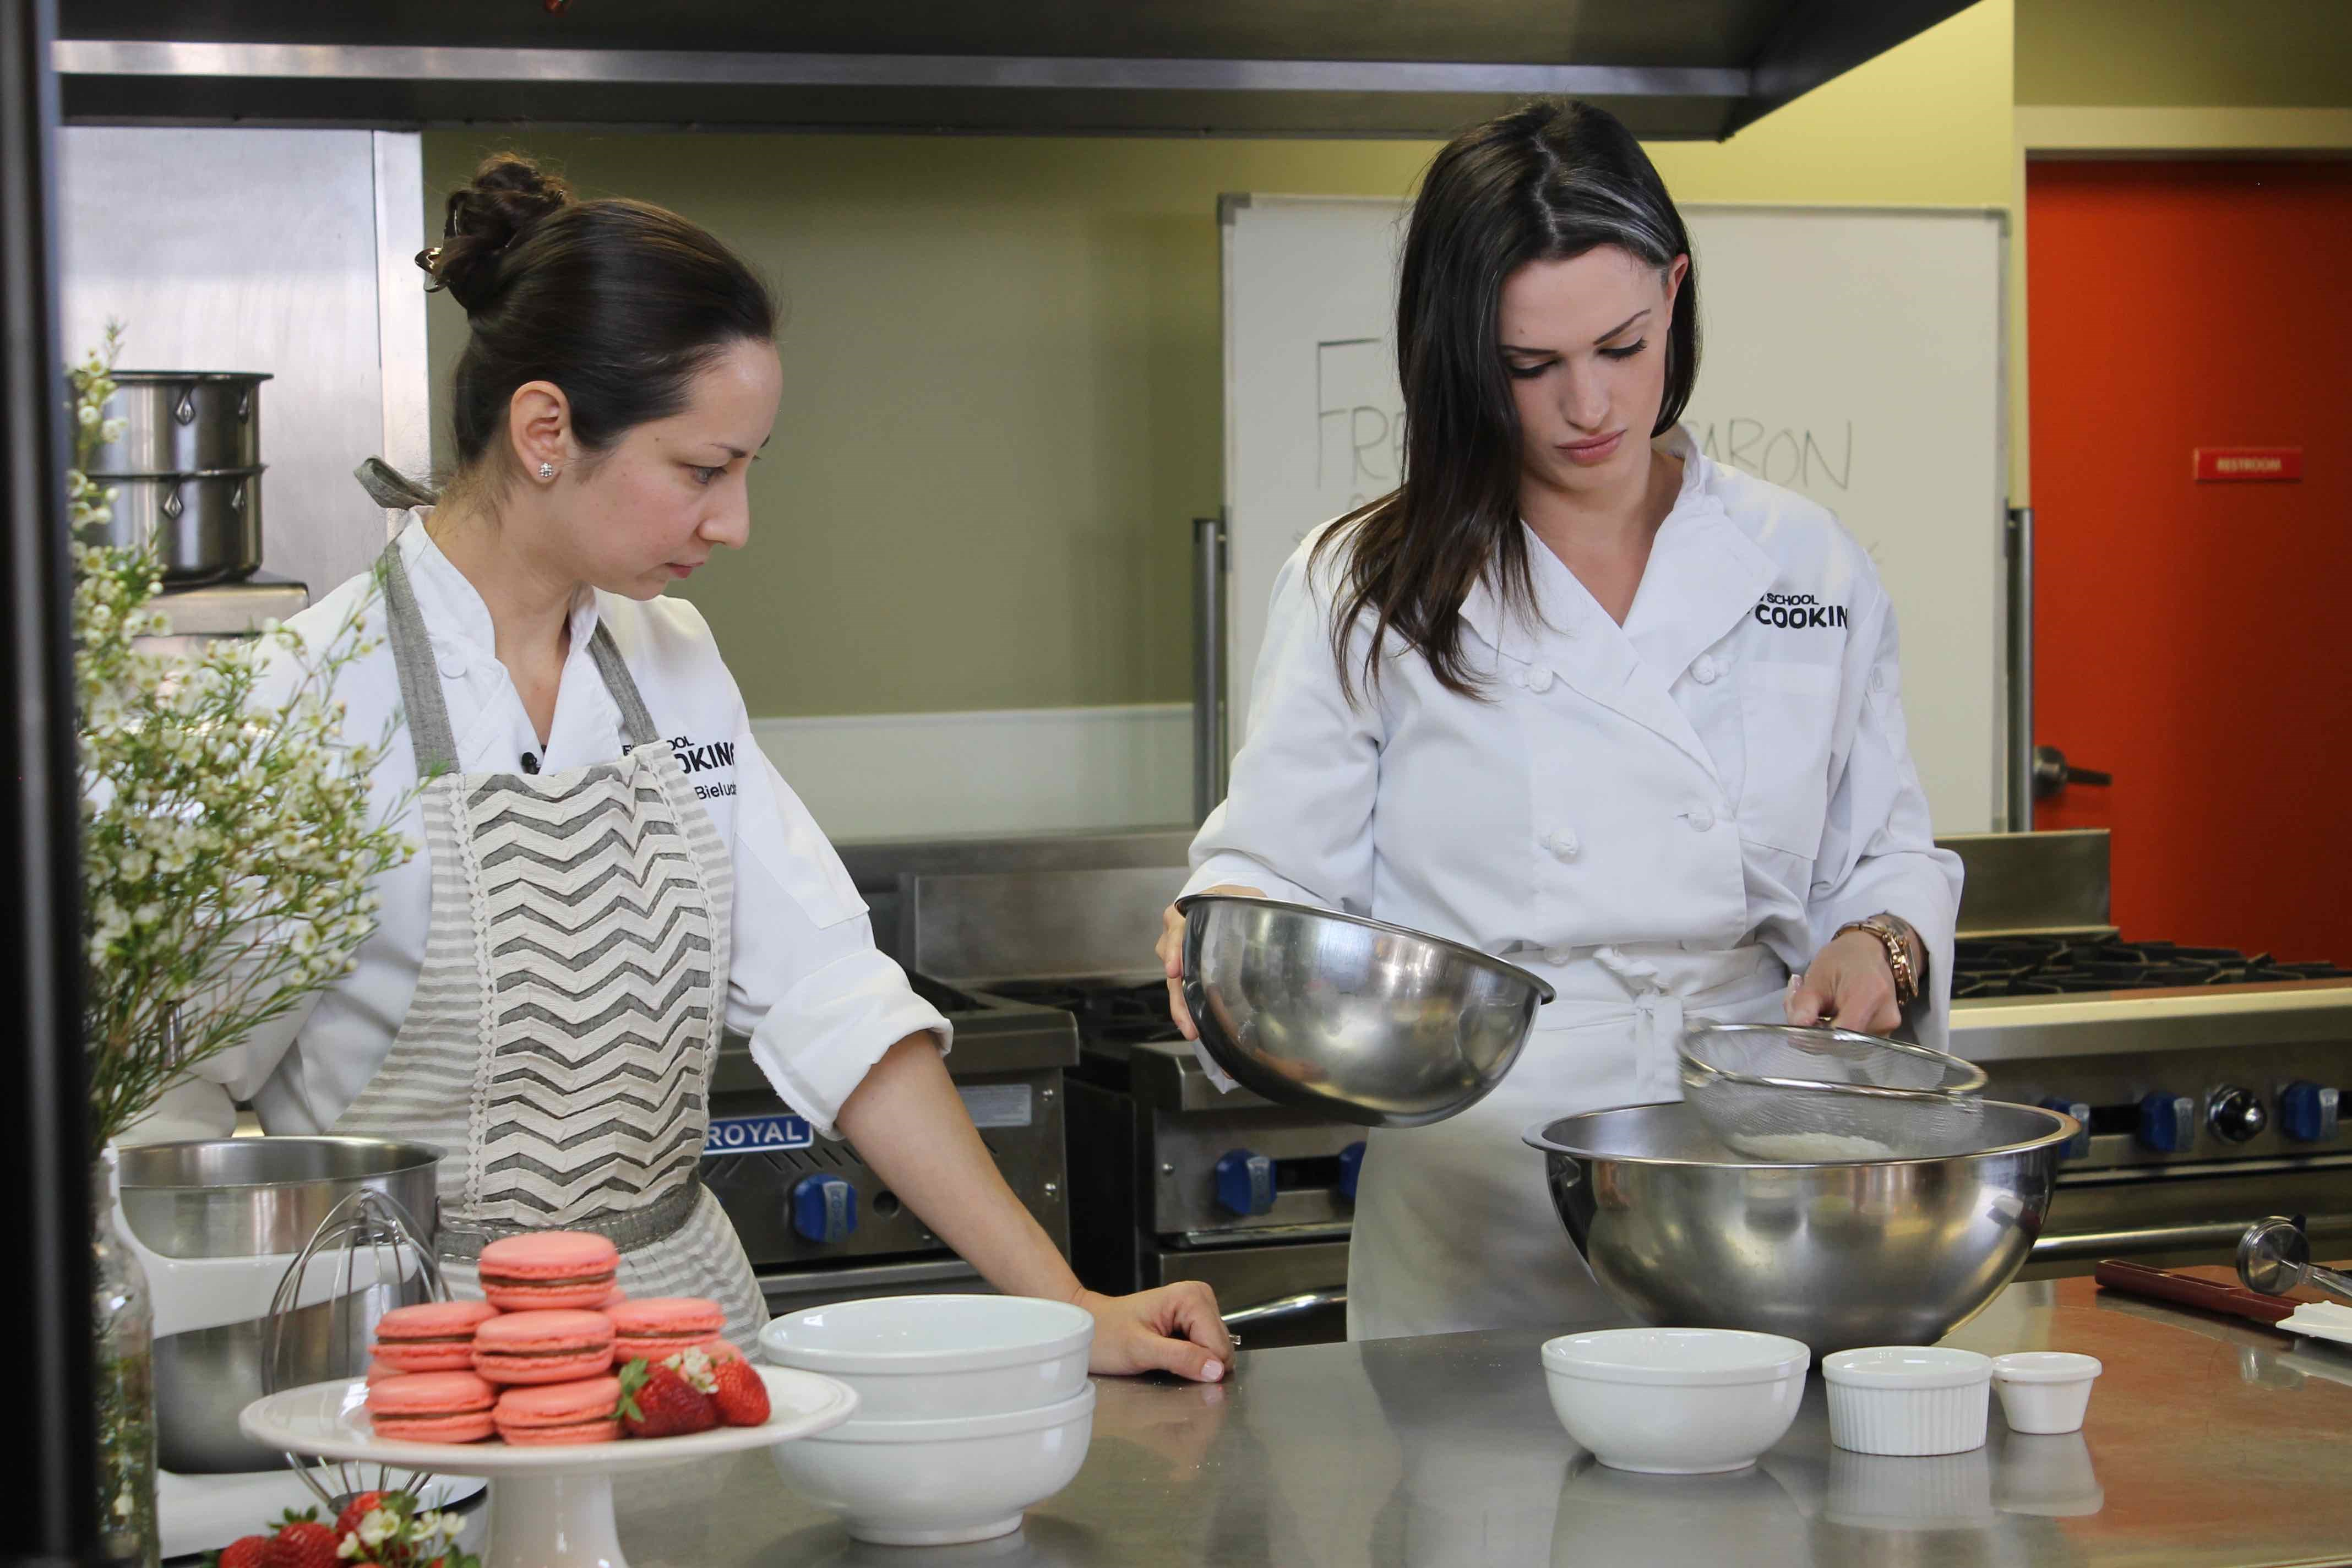 Advise culinary courses in Moscow